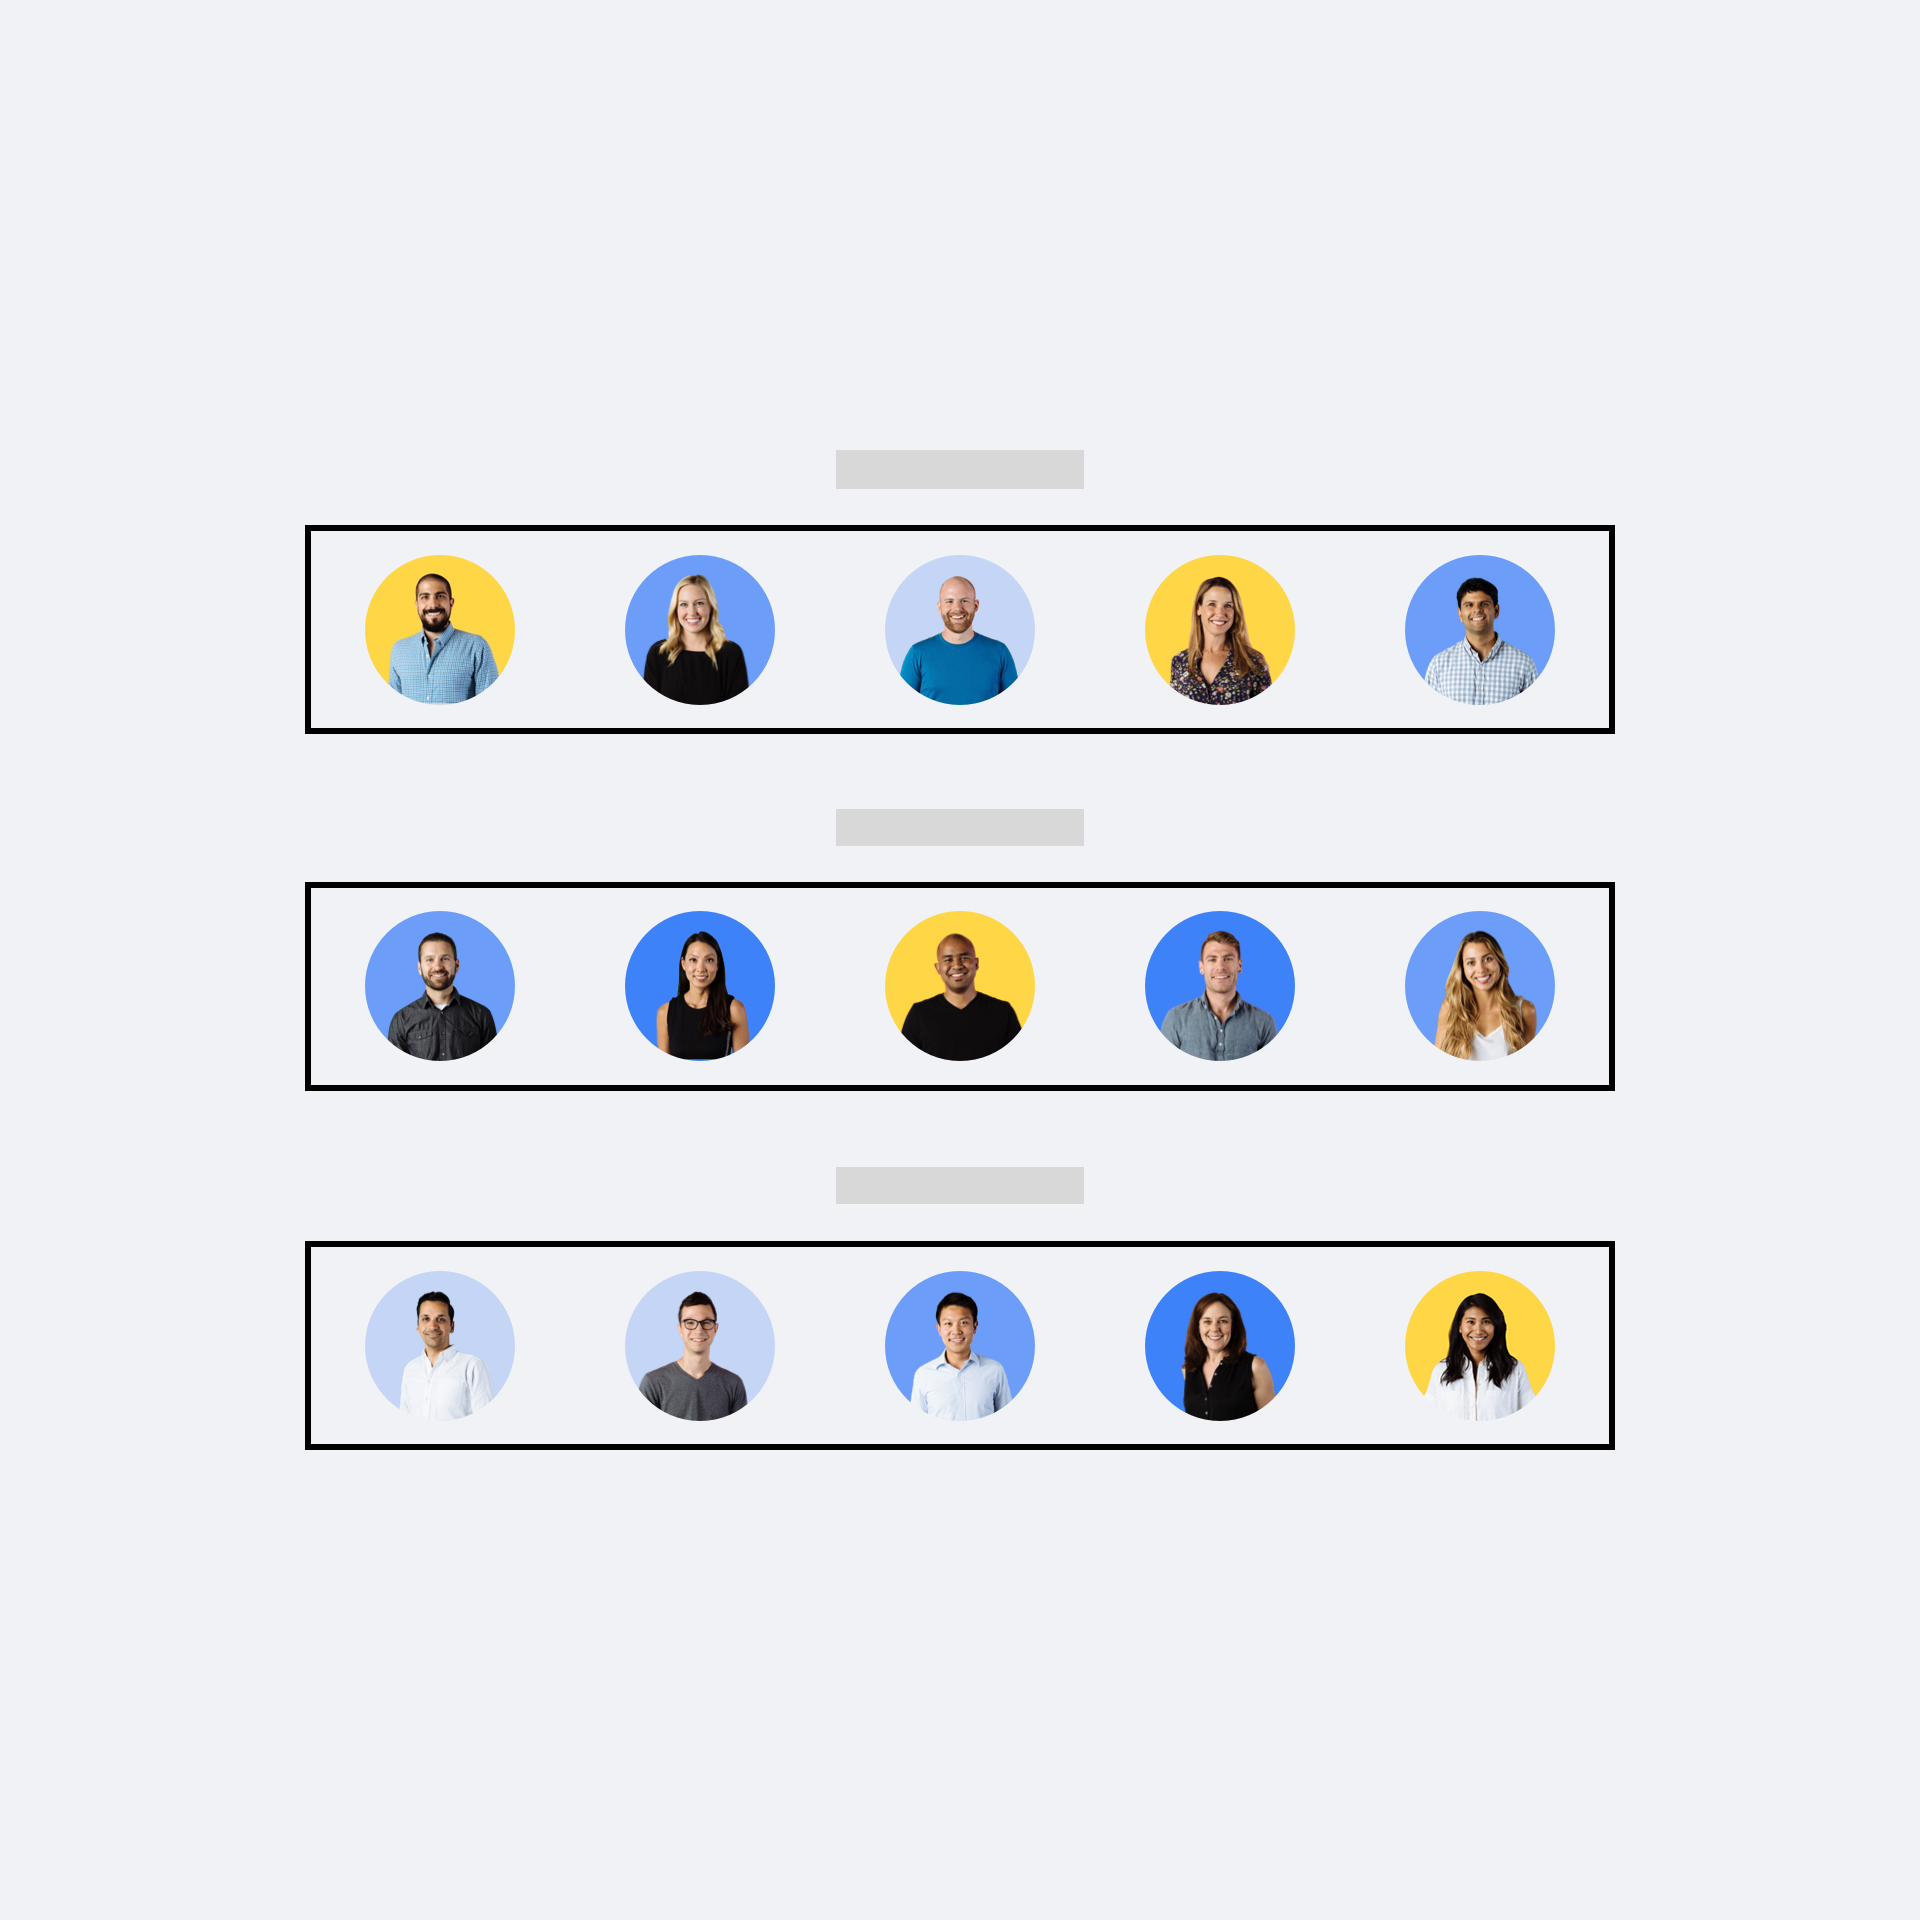 A series of Dropbox user profile pictures